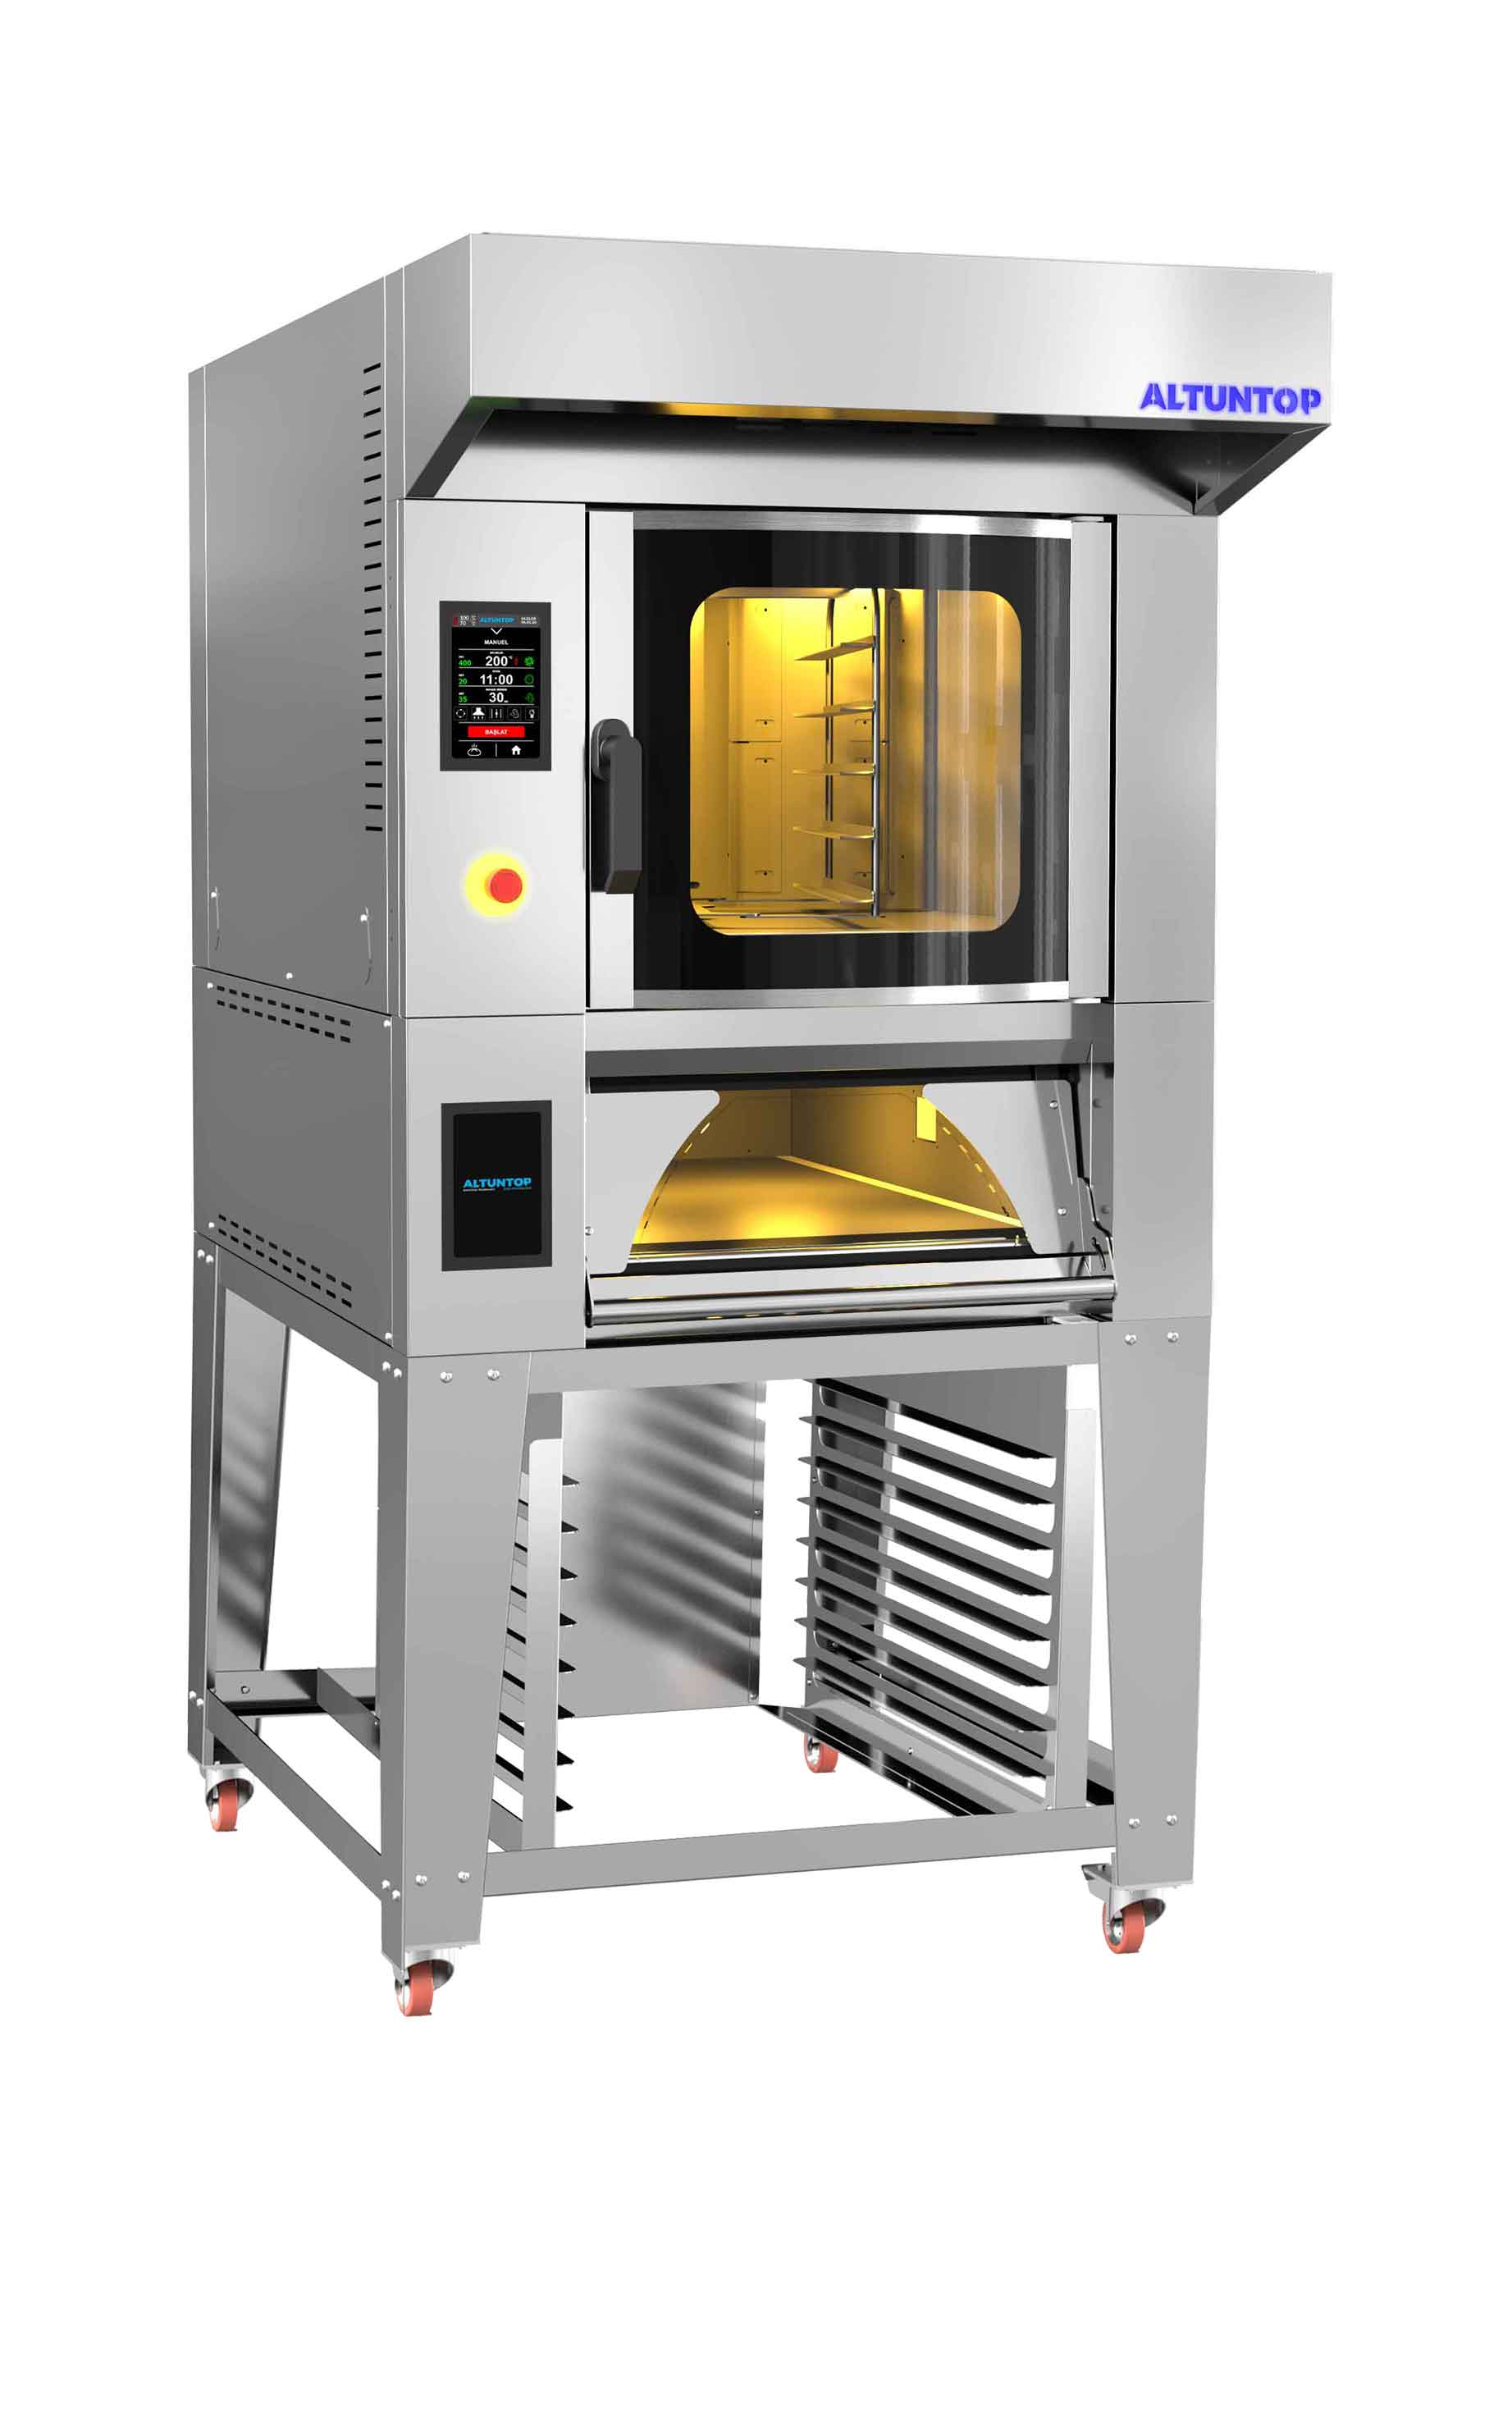 CONBACT + PASTRY OVEN